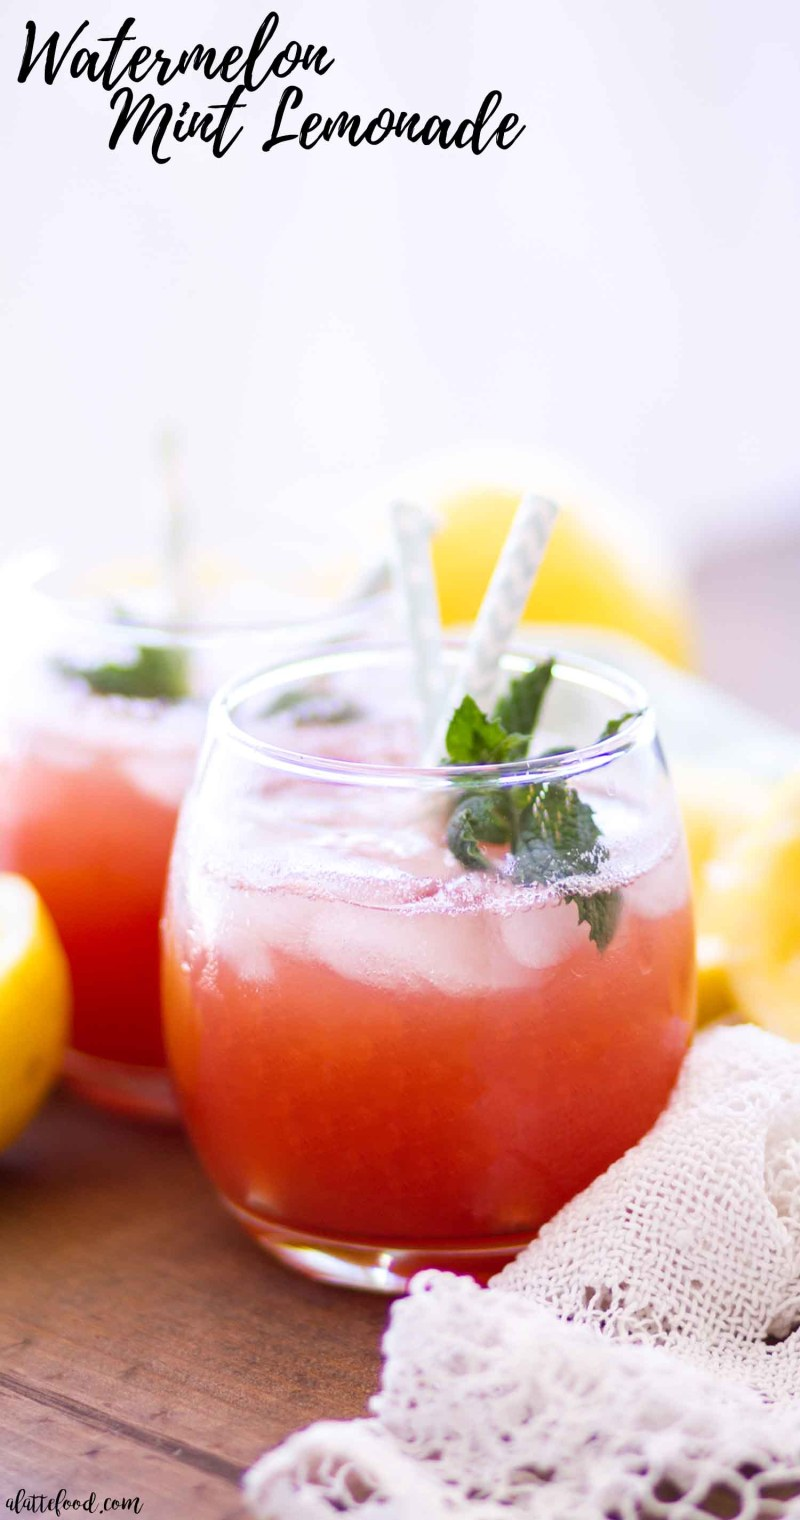 watermelon mint lemonade photo with text